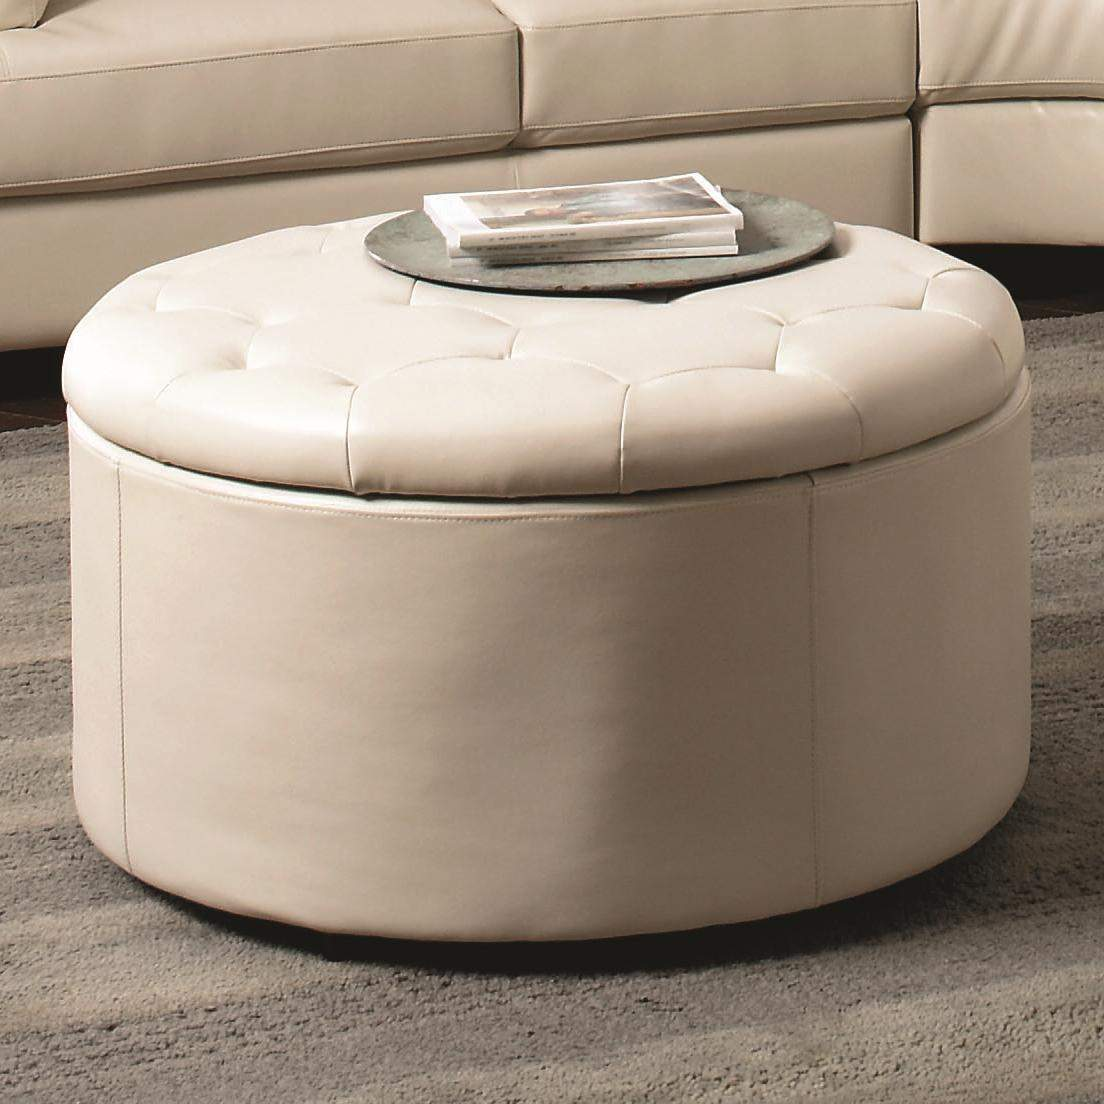 Landen Round Leather Storage Ottoman With Button Tufted Seat Quality Furniture At Affordable Prices In Philadelphia Main Line Pa